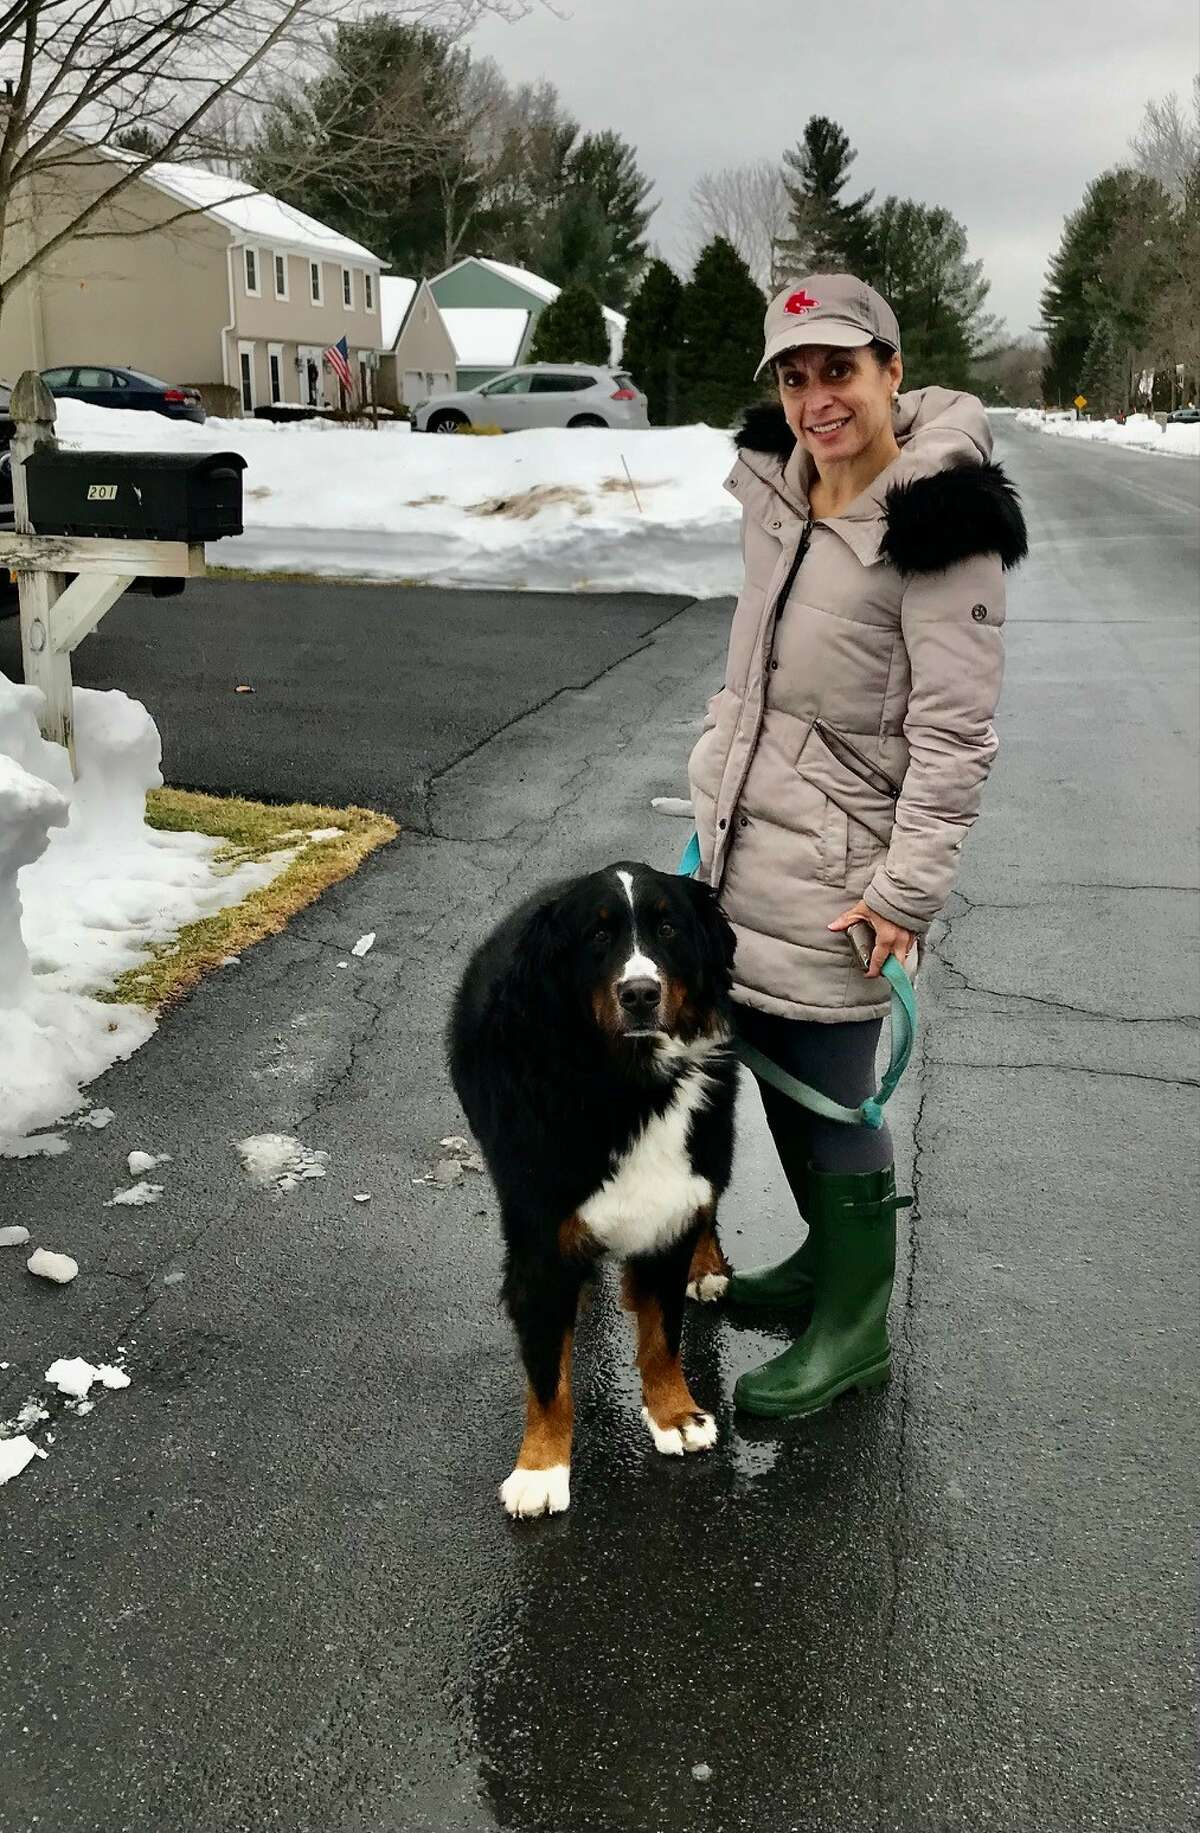 Nicole Maurer, of Placid Drive in Guilderland, N.Y., said her Bernese Mountain Dog, Jasmine, waits excitedly for Ray Andi to pull up in his Postal Service truck each day around 2 pm.